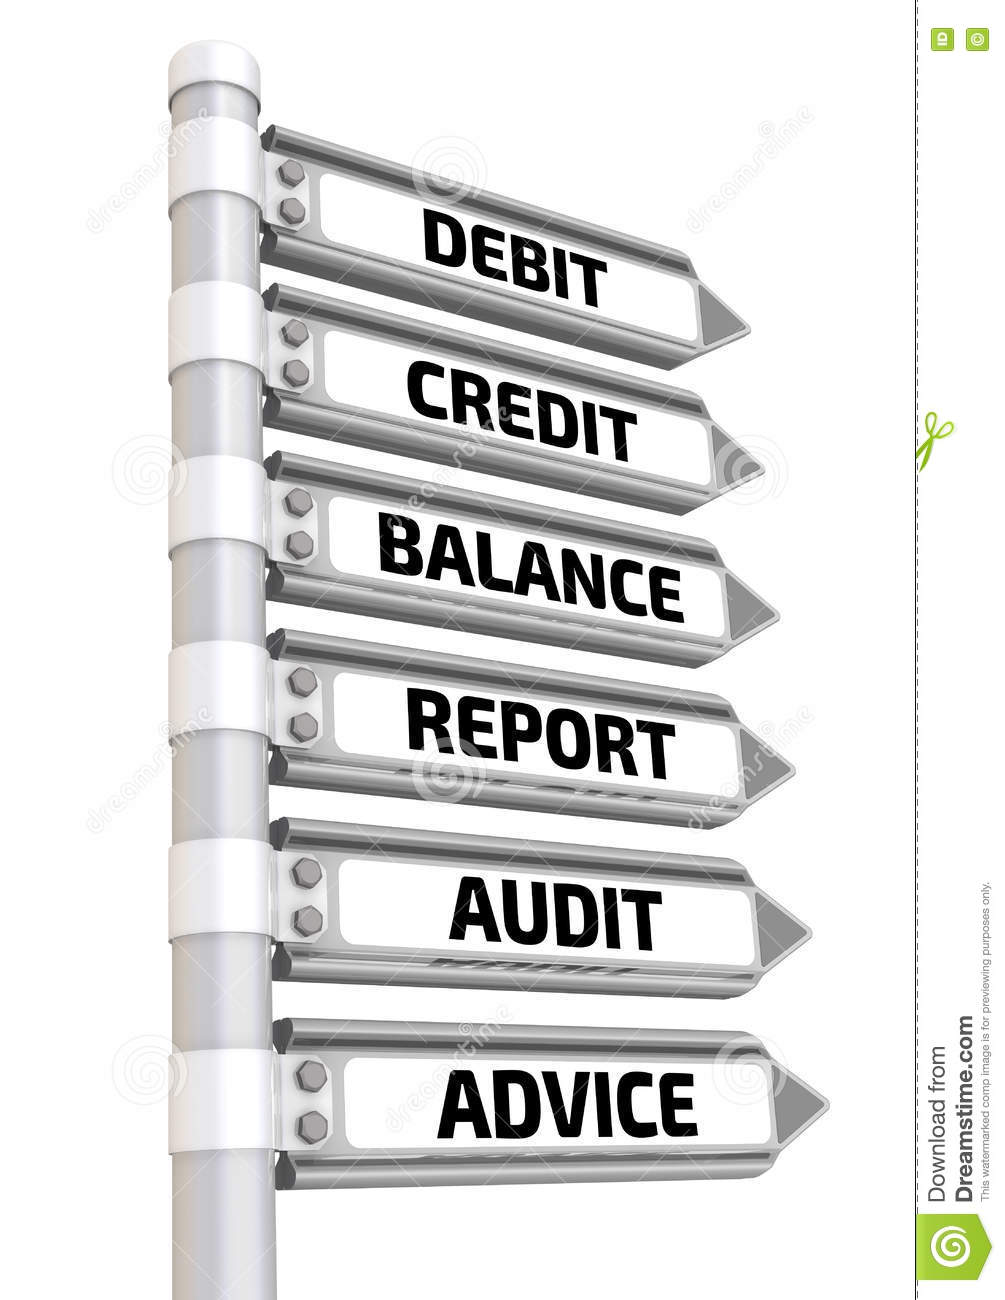 Ask an Accountant a Question for Free